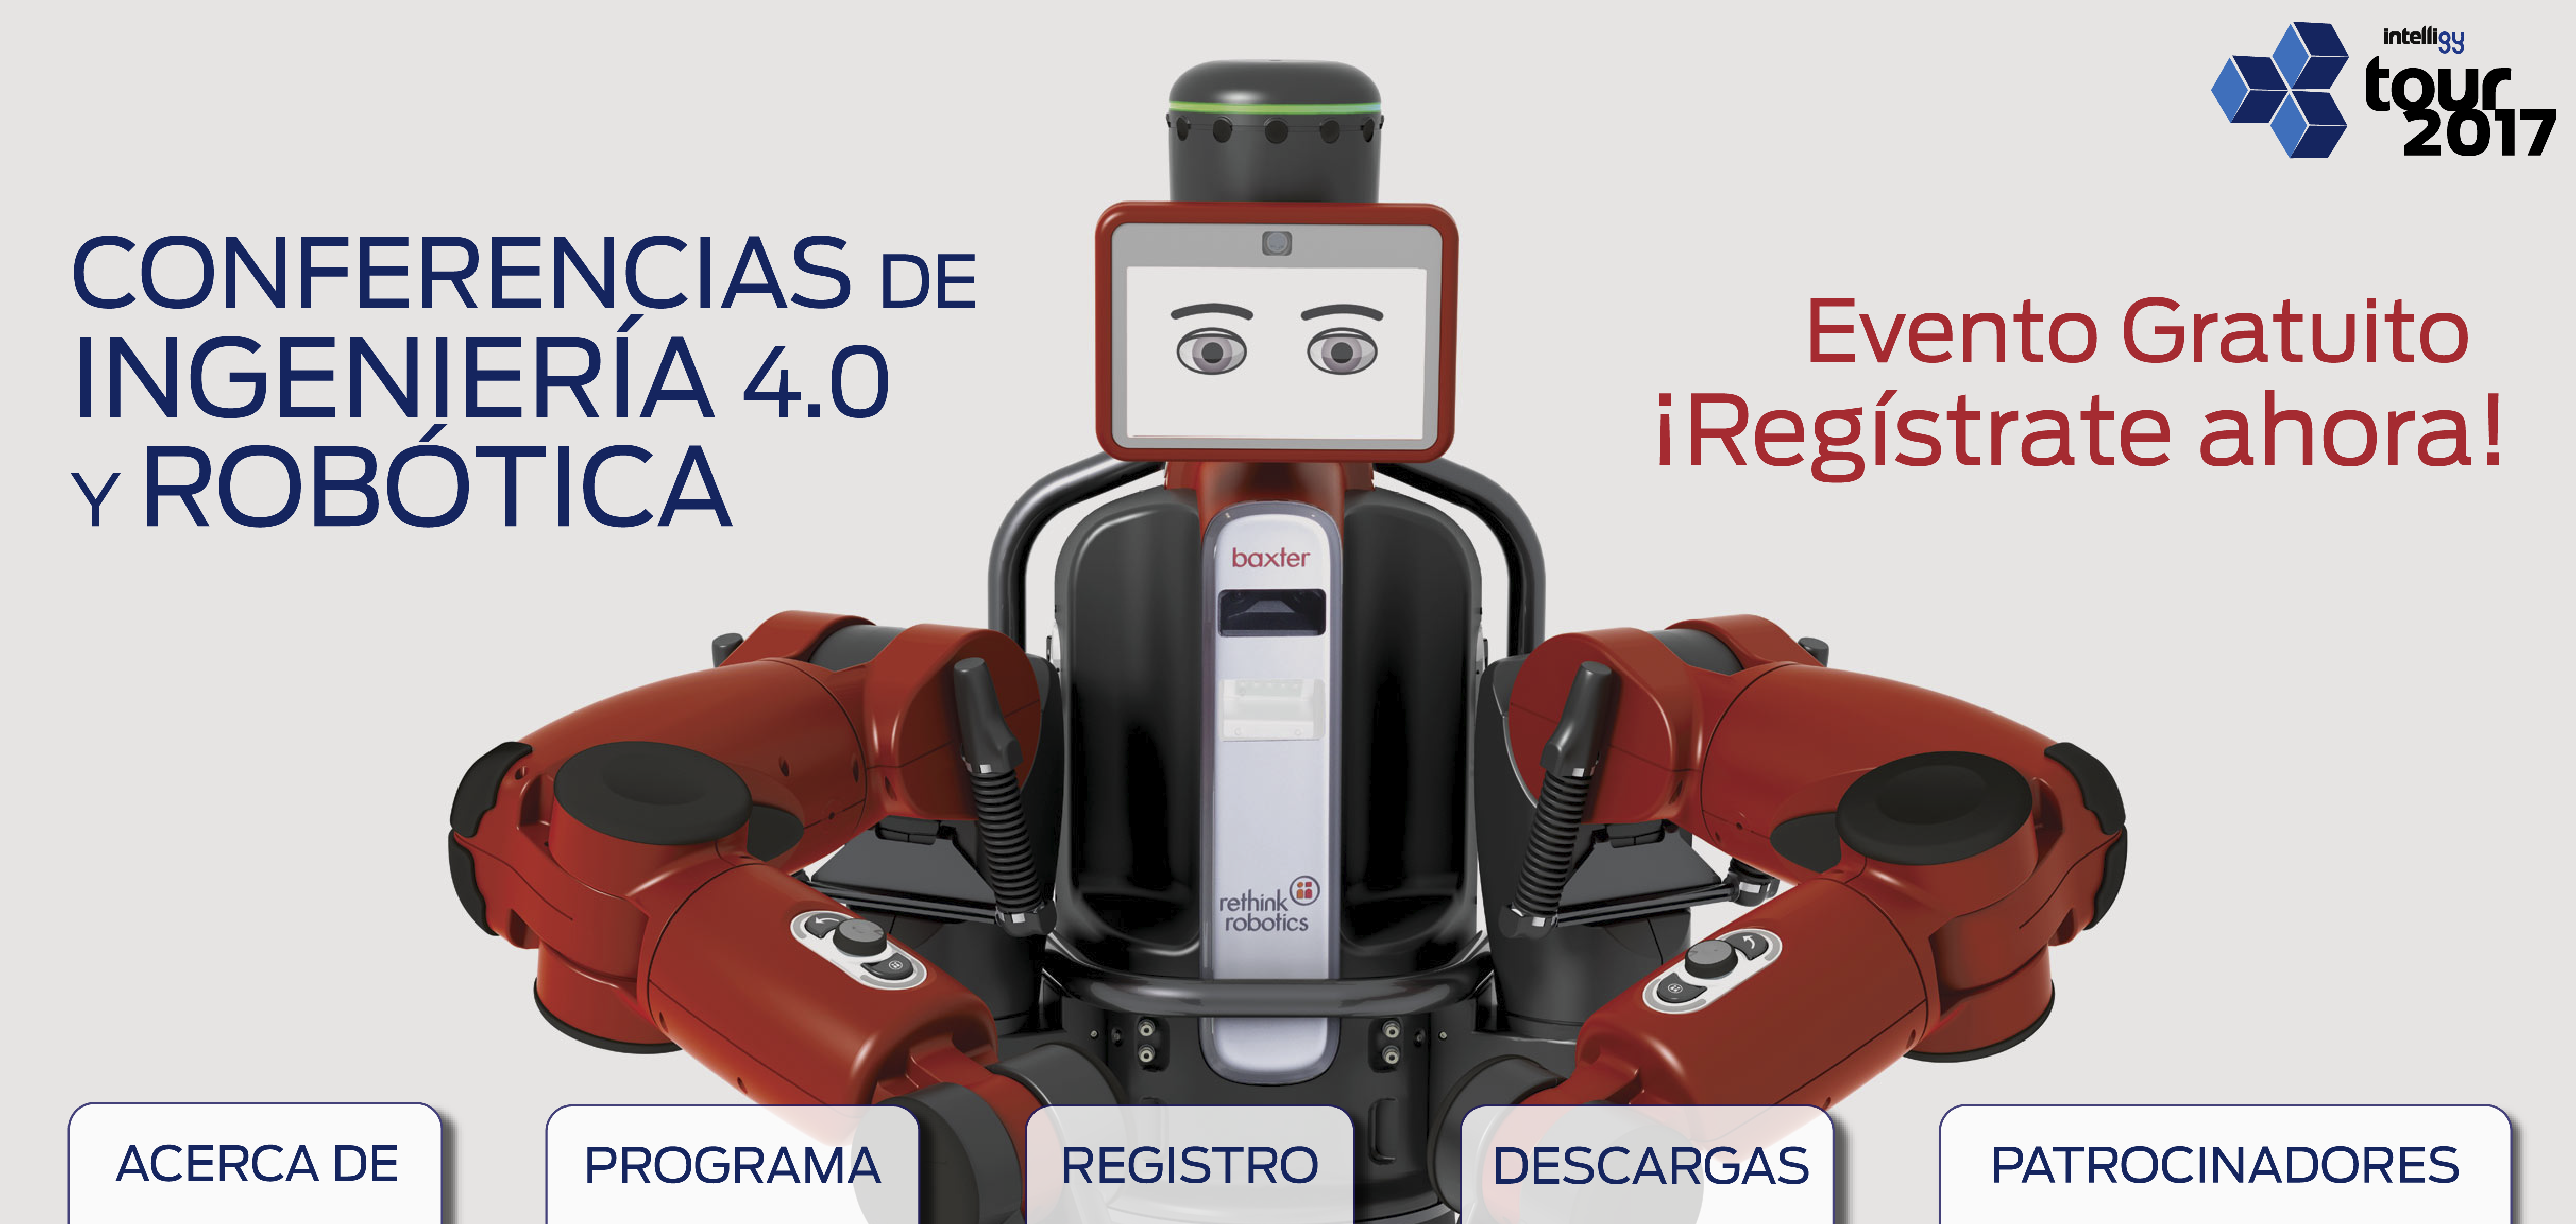 Intelligy Tour: La Nueva Era en Robótica 3D